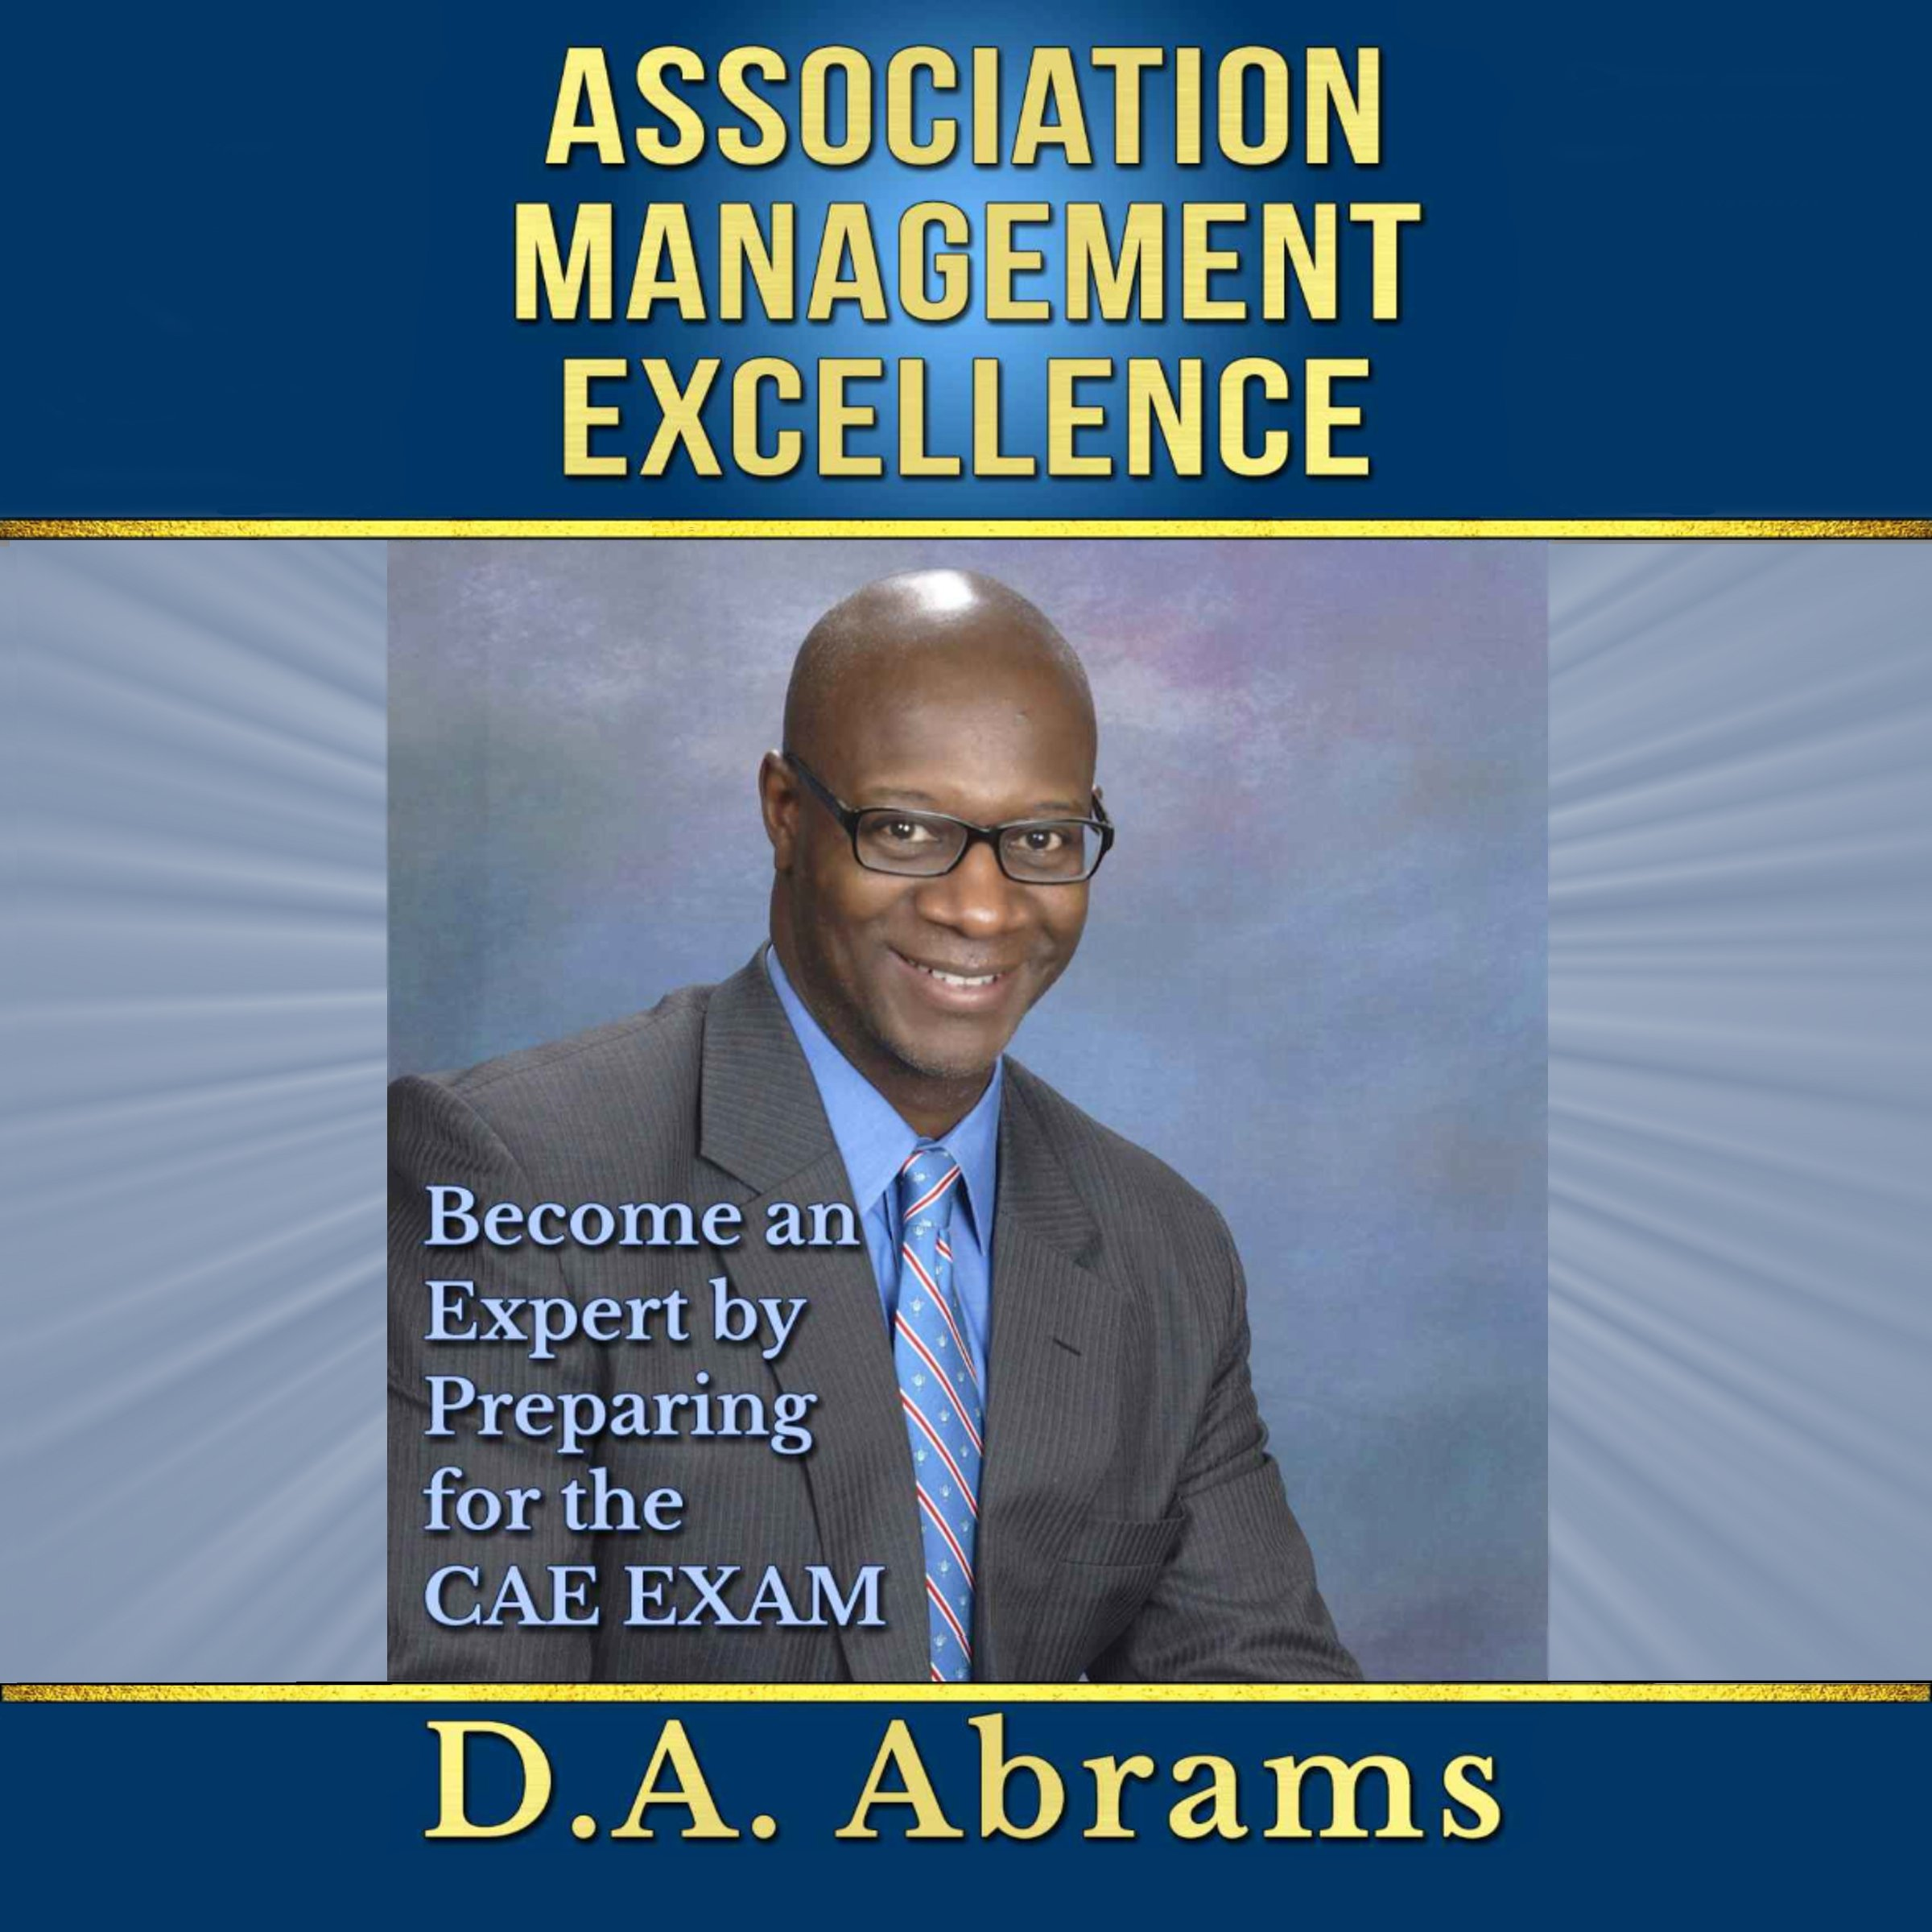 Association Management Excellence: Become an Expert by Preparing for the CAE EXAM